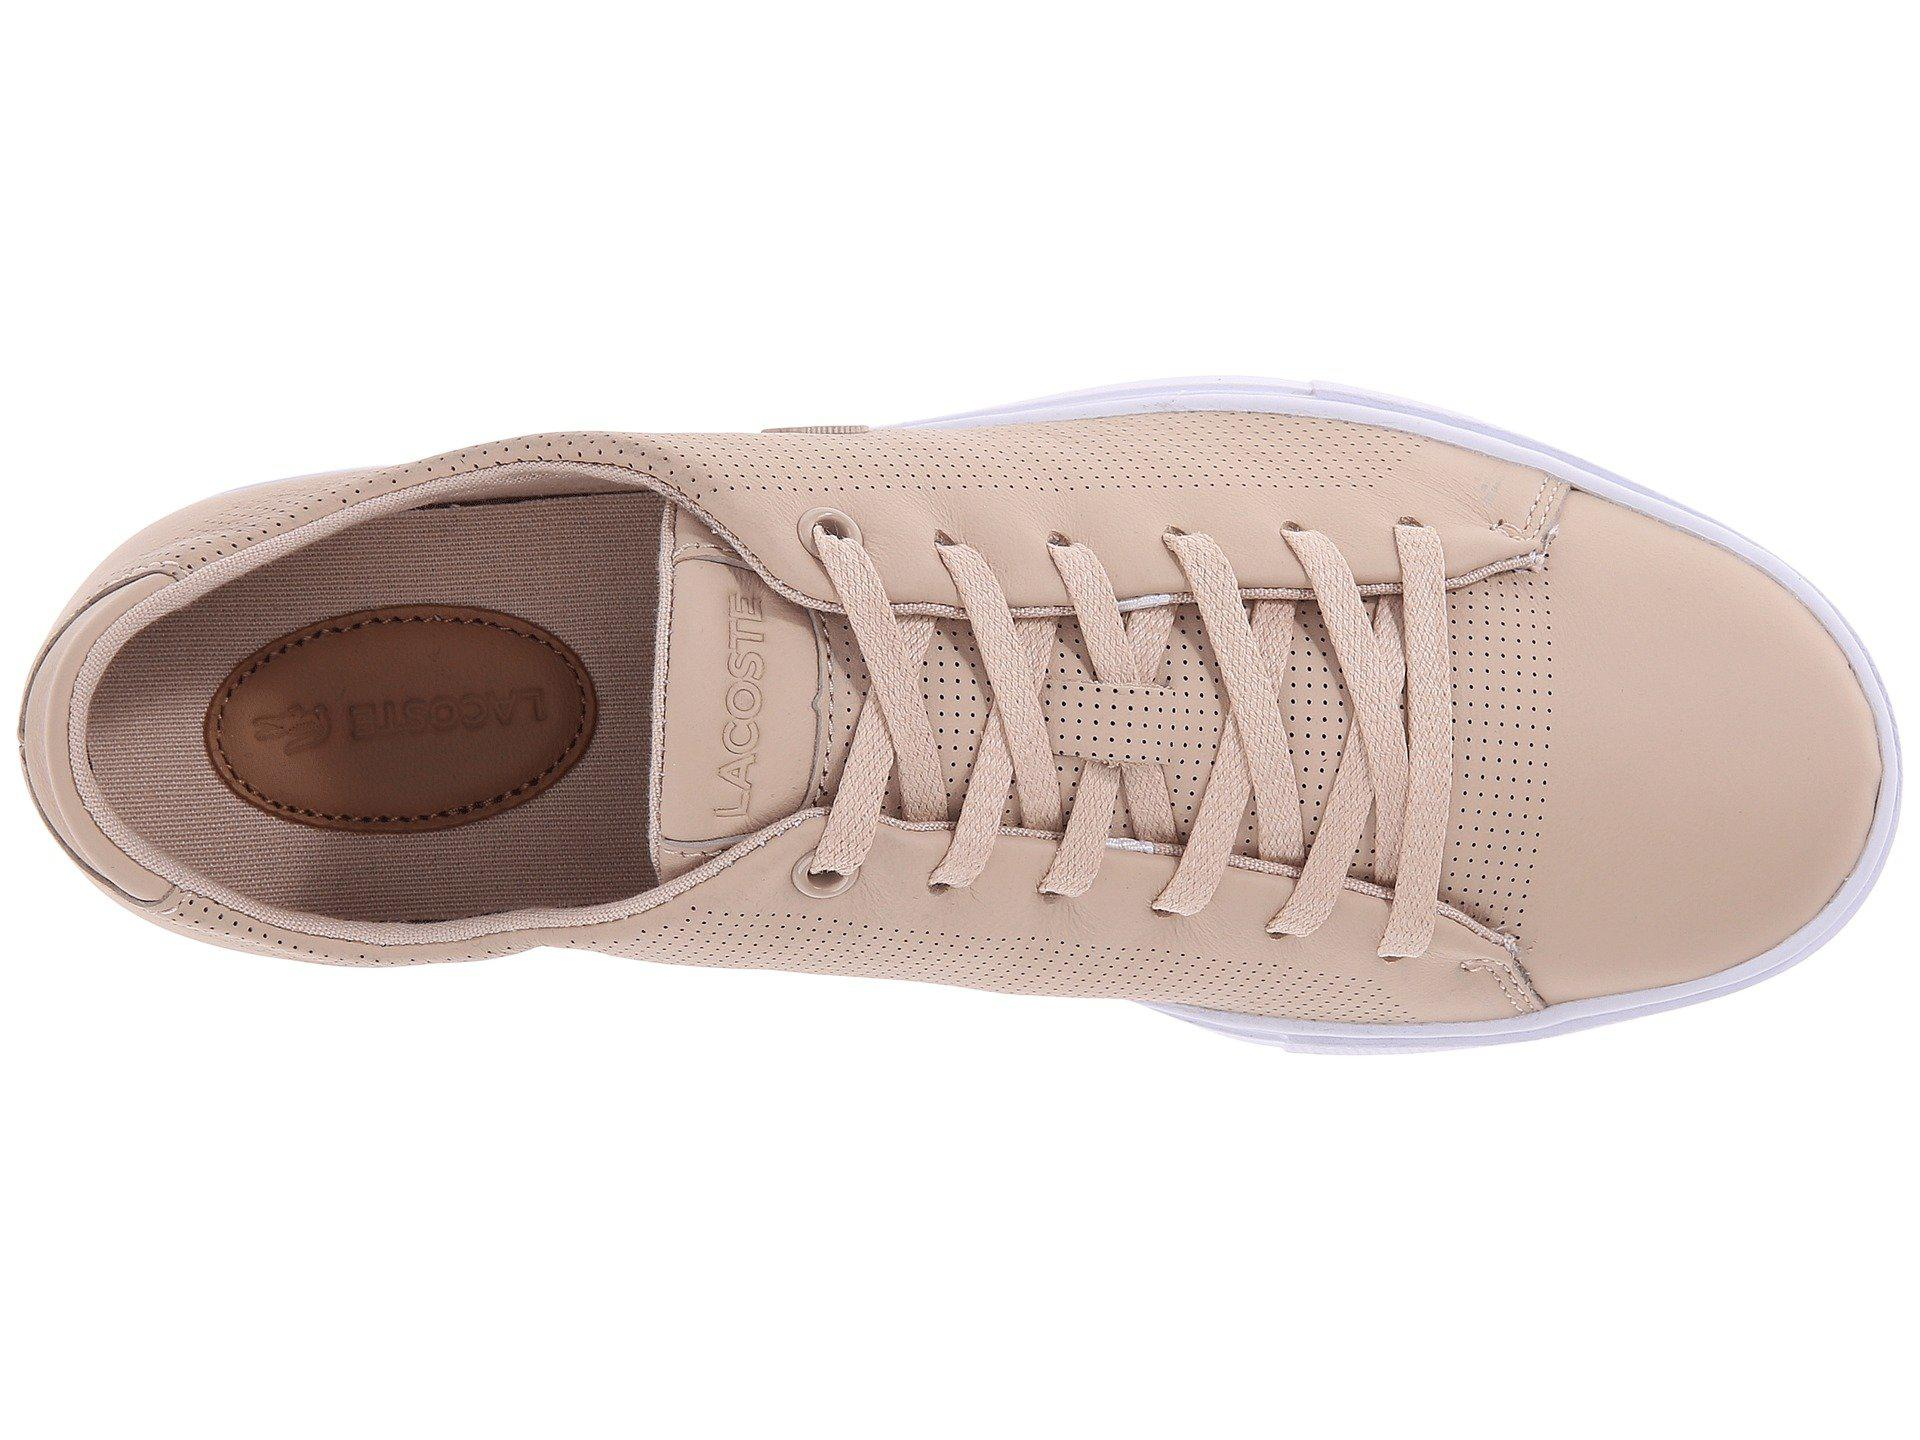 d654fbca24fca2 Lyst - Lacoste Showcourt Lace in Natural